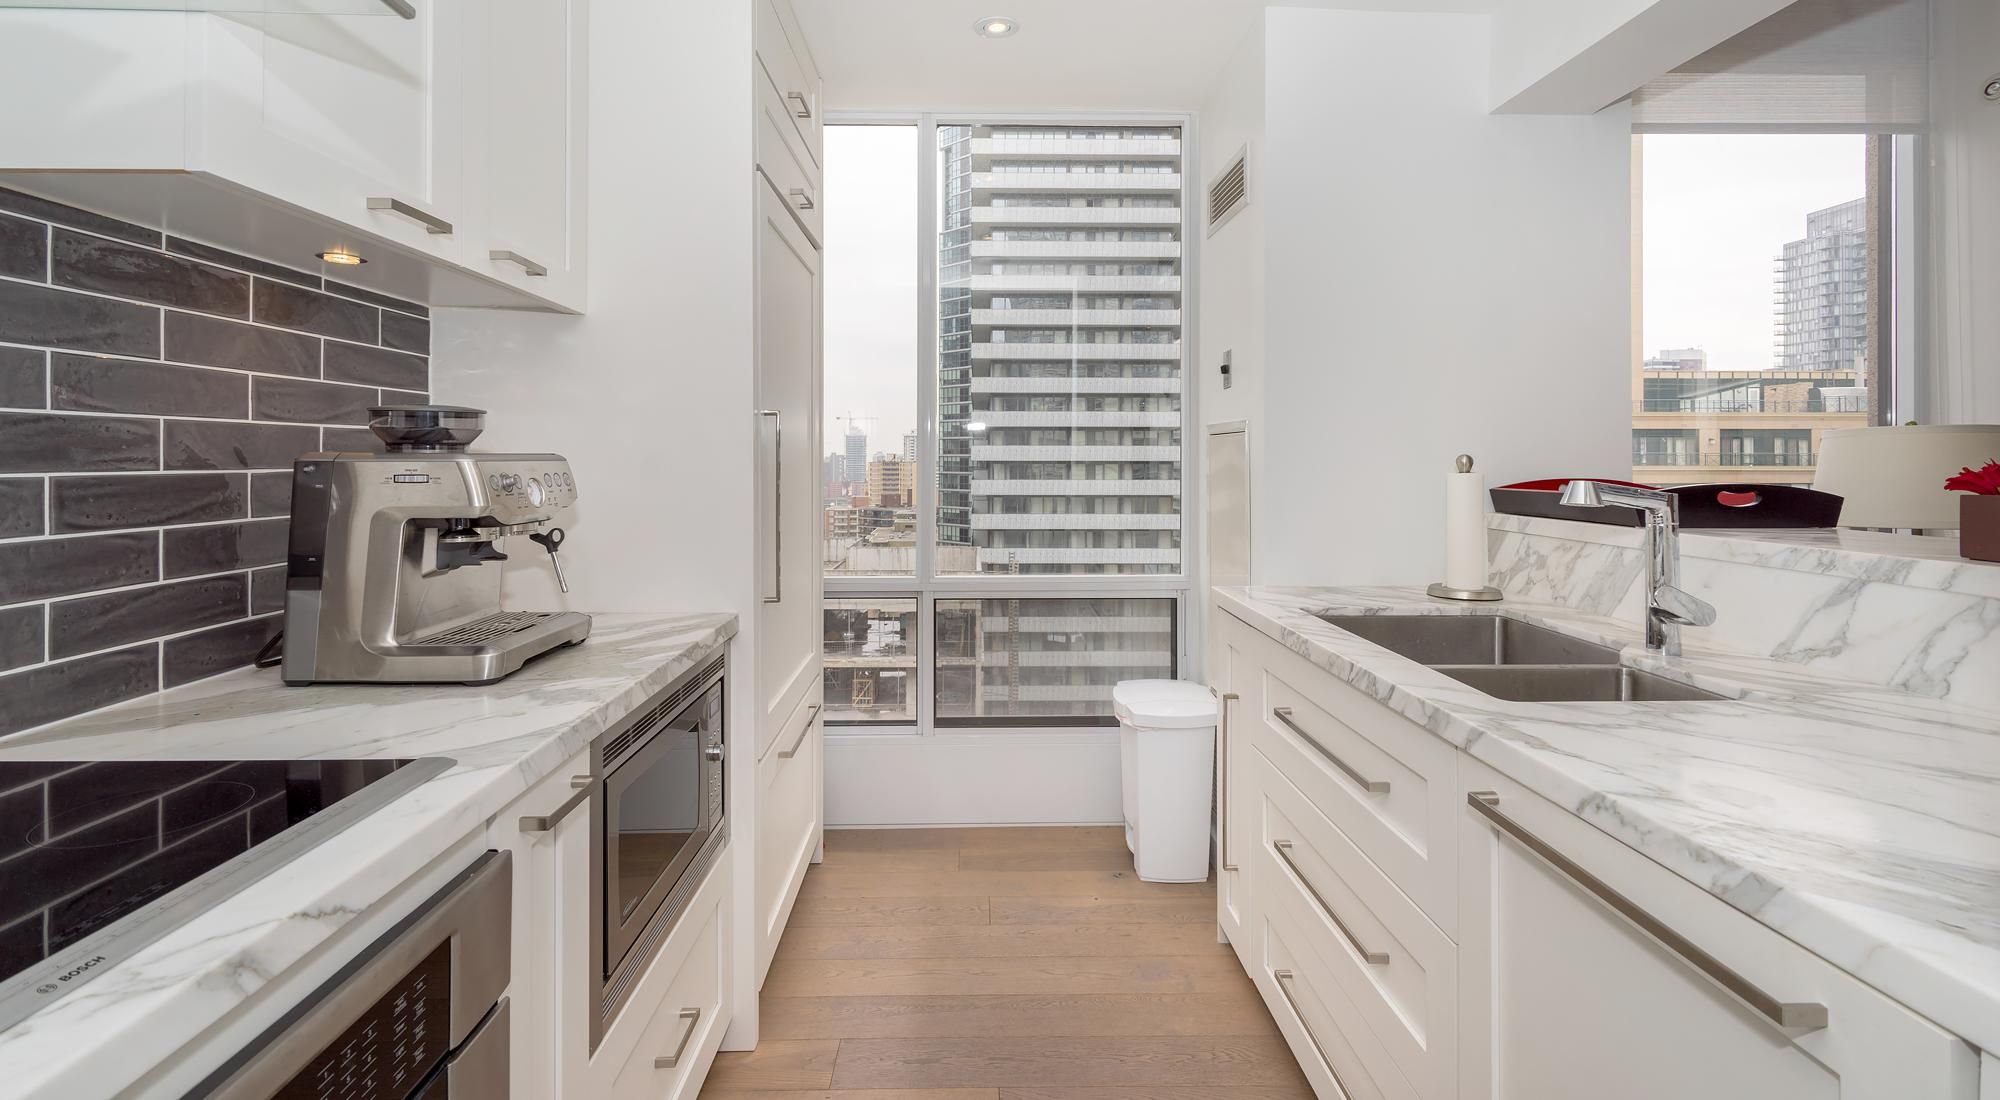 85 Bloor Street East #1611 | Sold by Alina Kholodov